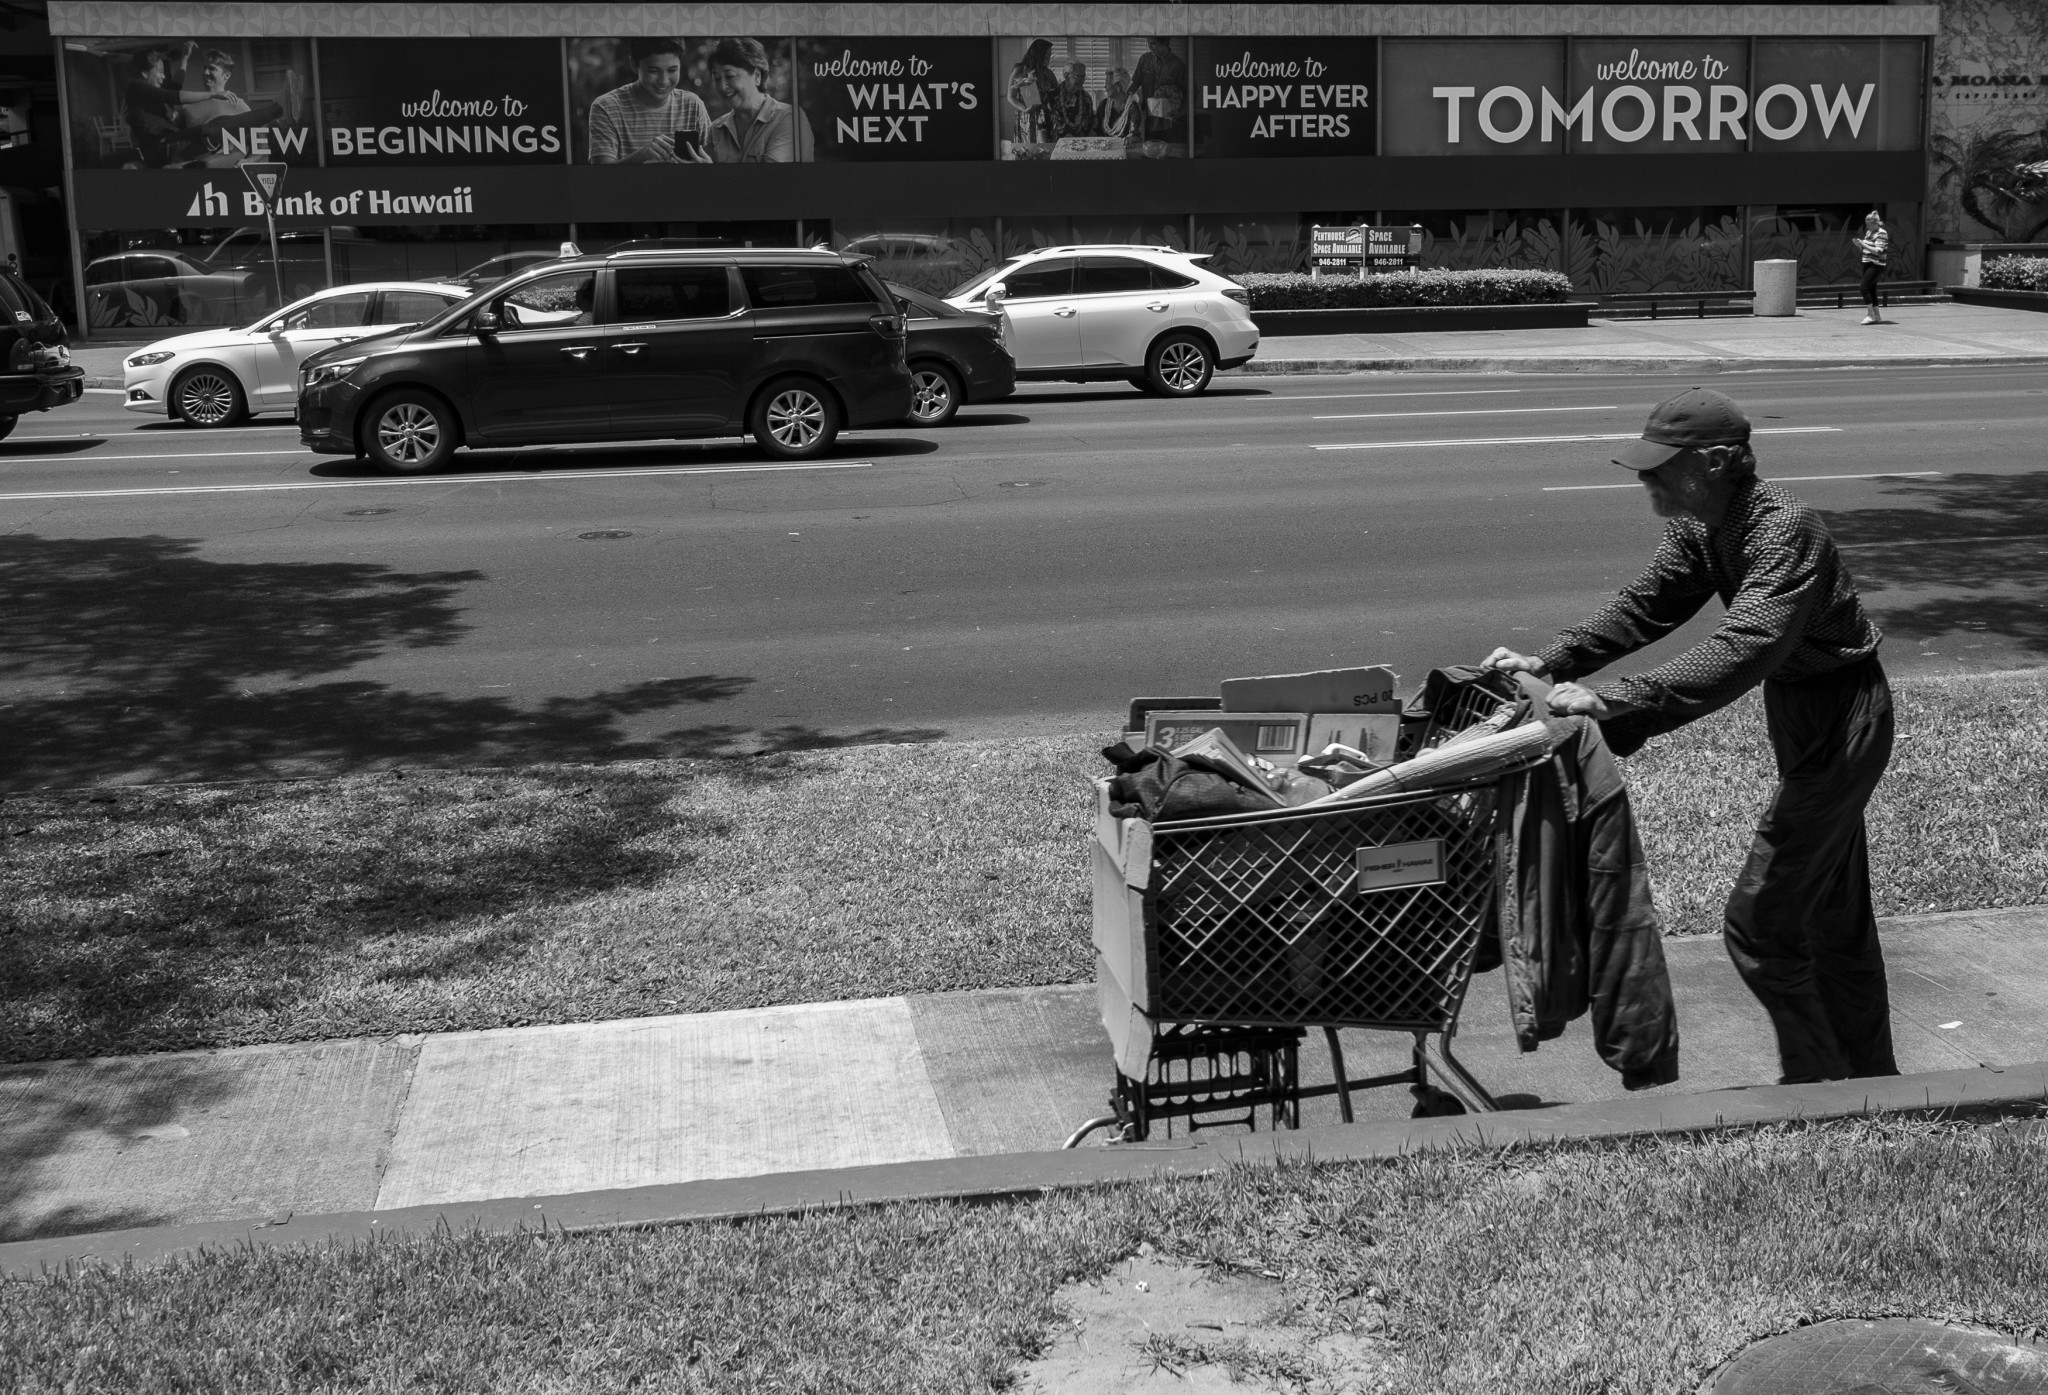 <p>A man rolled his possessions past some hopeful economic messages outside a bank building.</p>